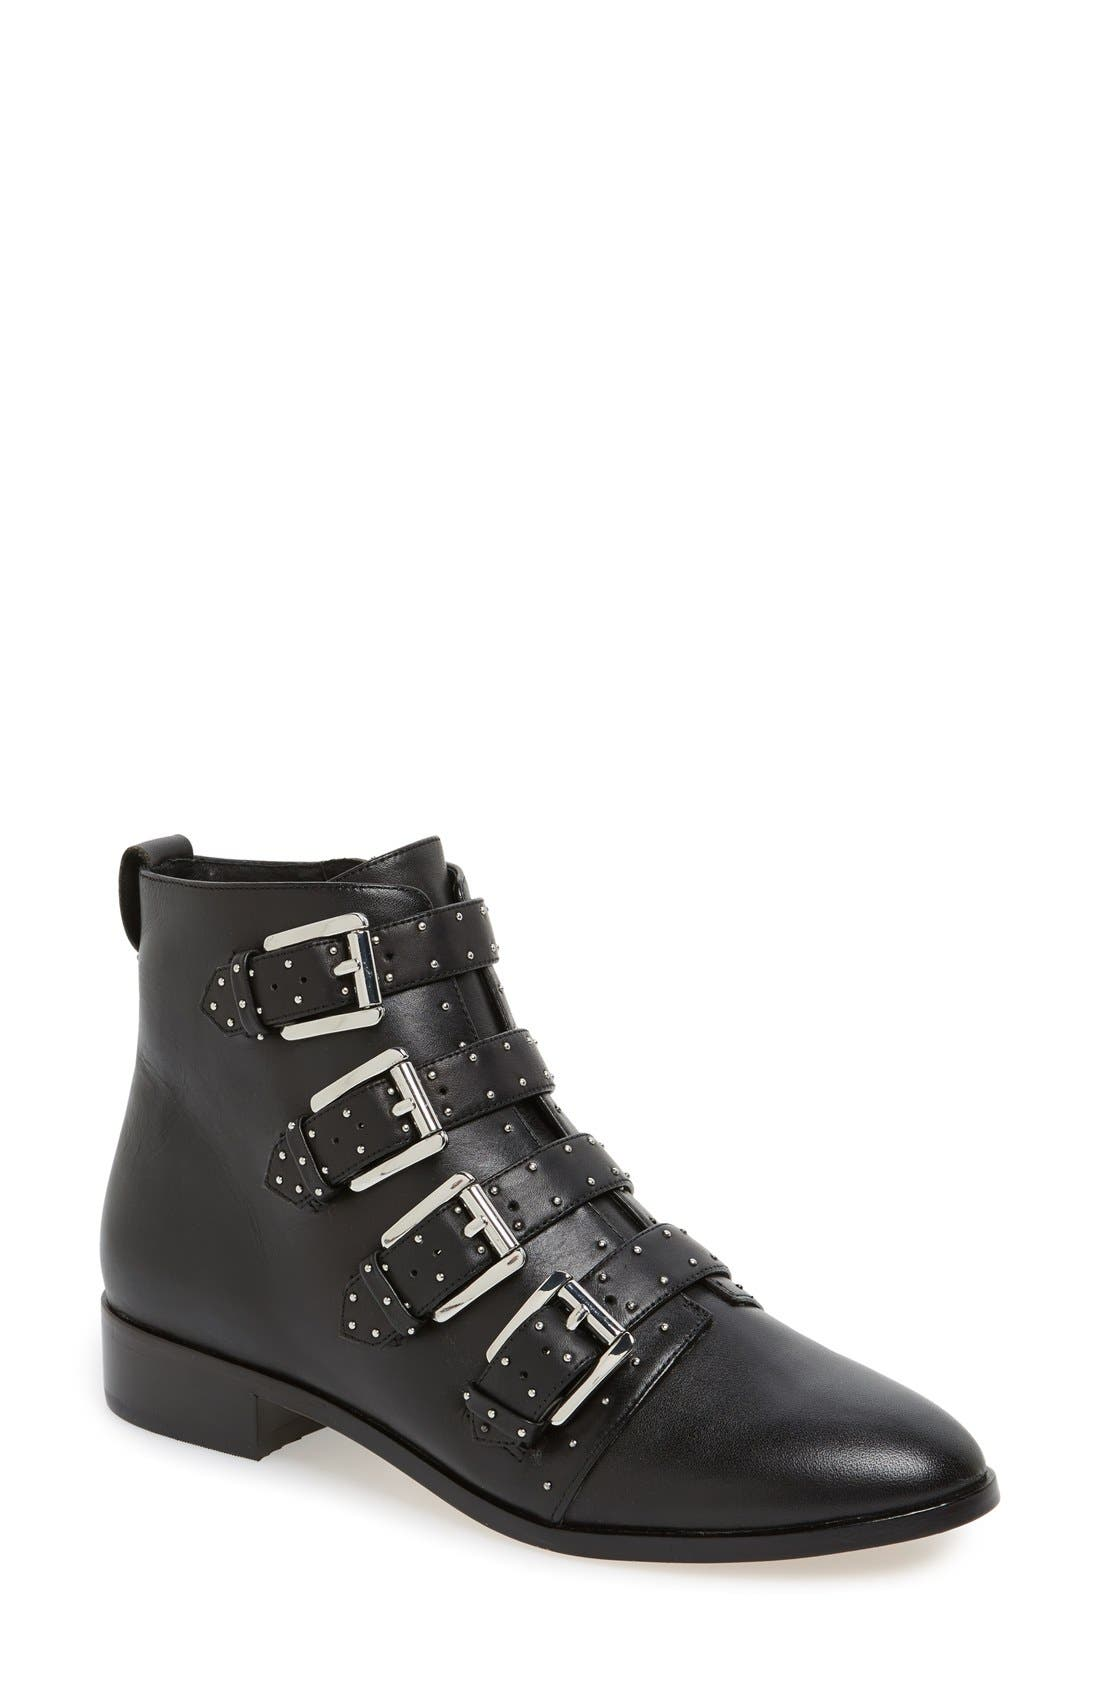 Alternate Image 1 Selected - Rebecca Minkoff 'Maddox' Buckle Bootie (Women)